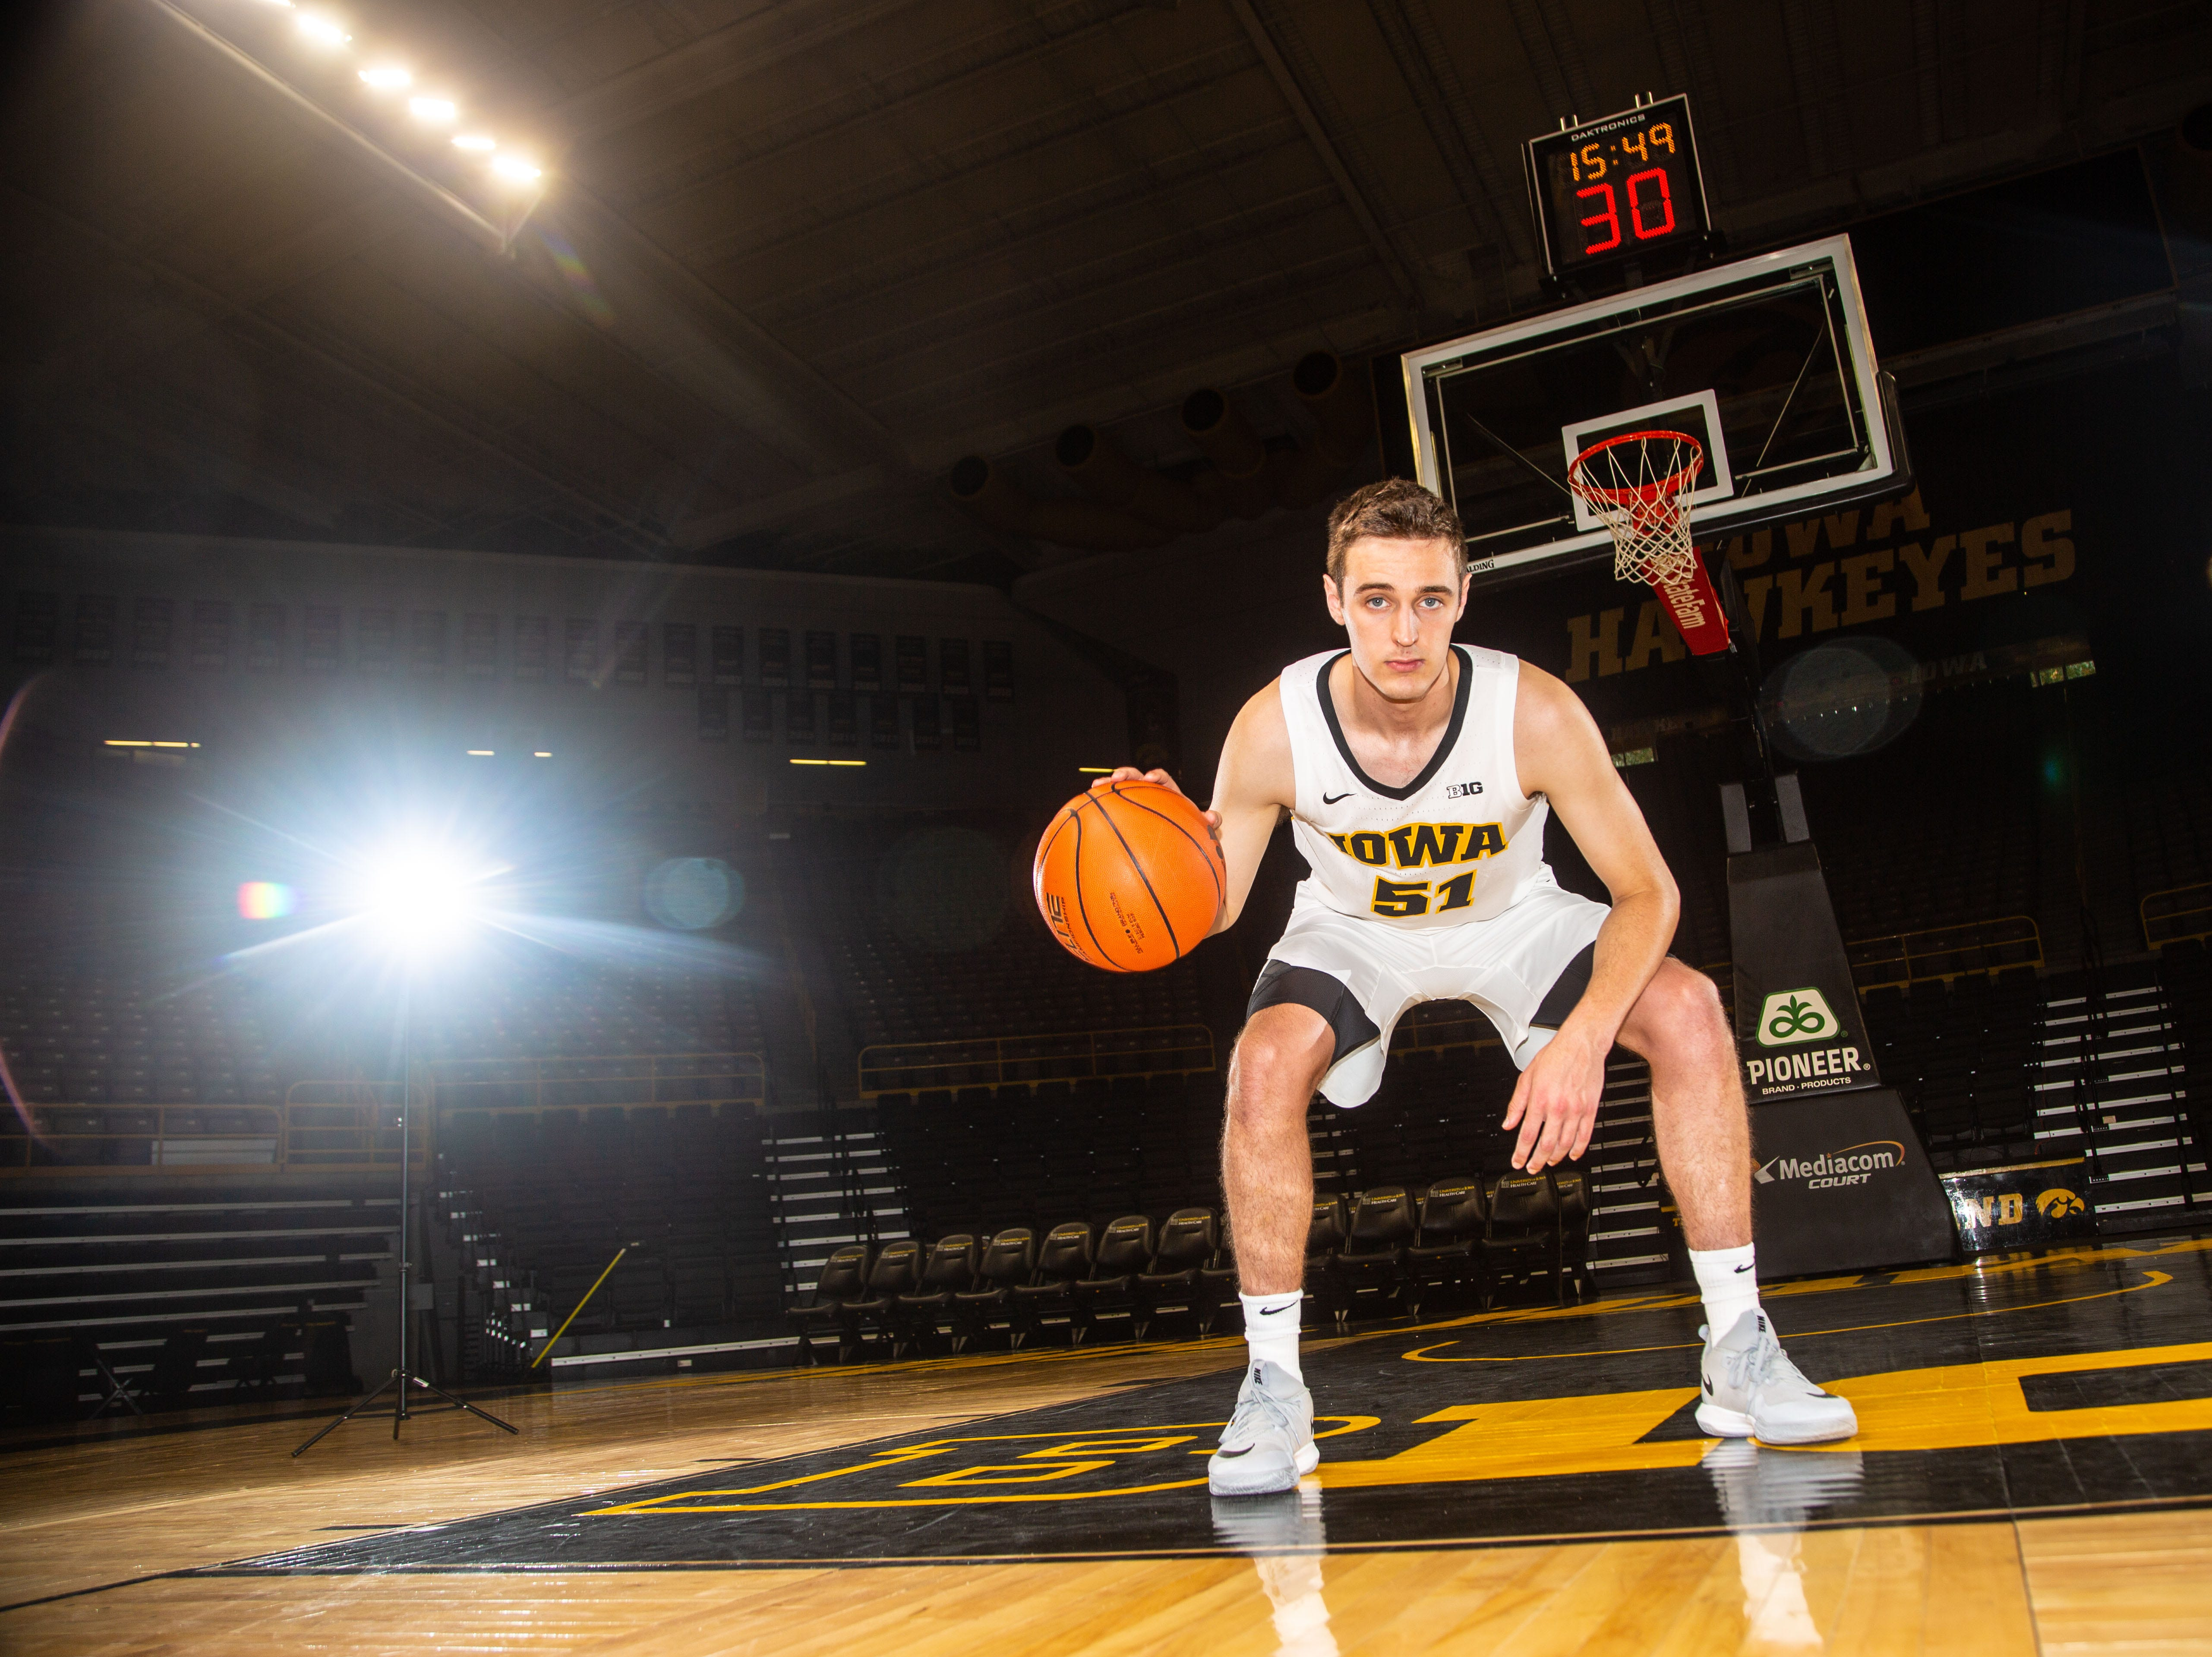 Iowa forward Nicholas Baer poses for a photo during Hawkeye media day at Carver Hawkeye ArenaMonday, Oct. 8, 2018.